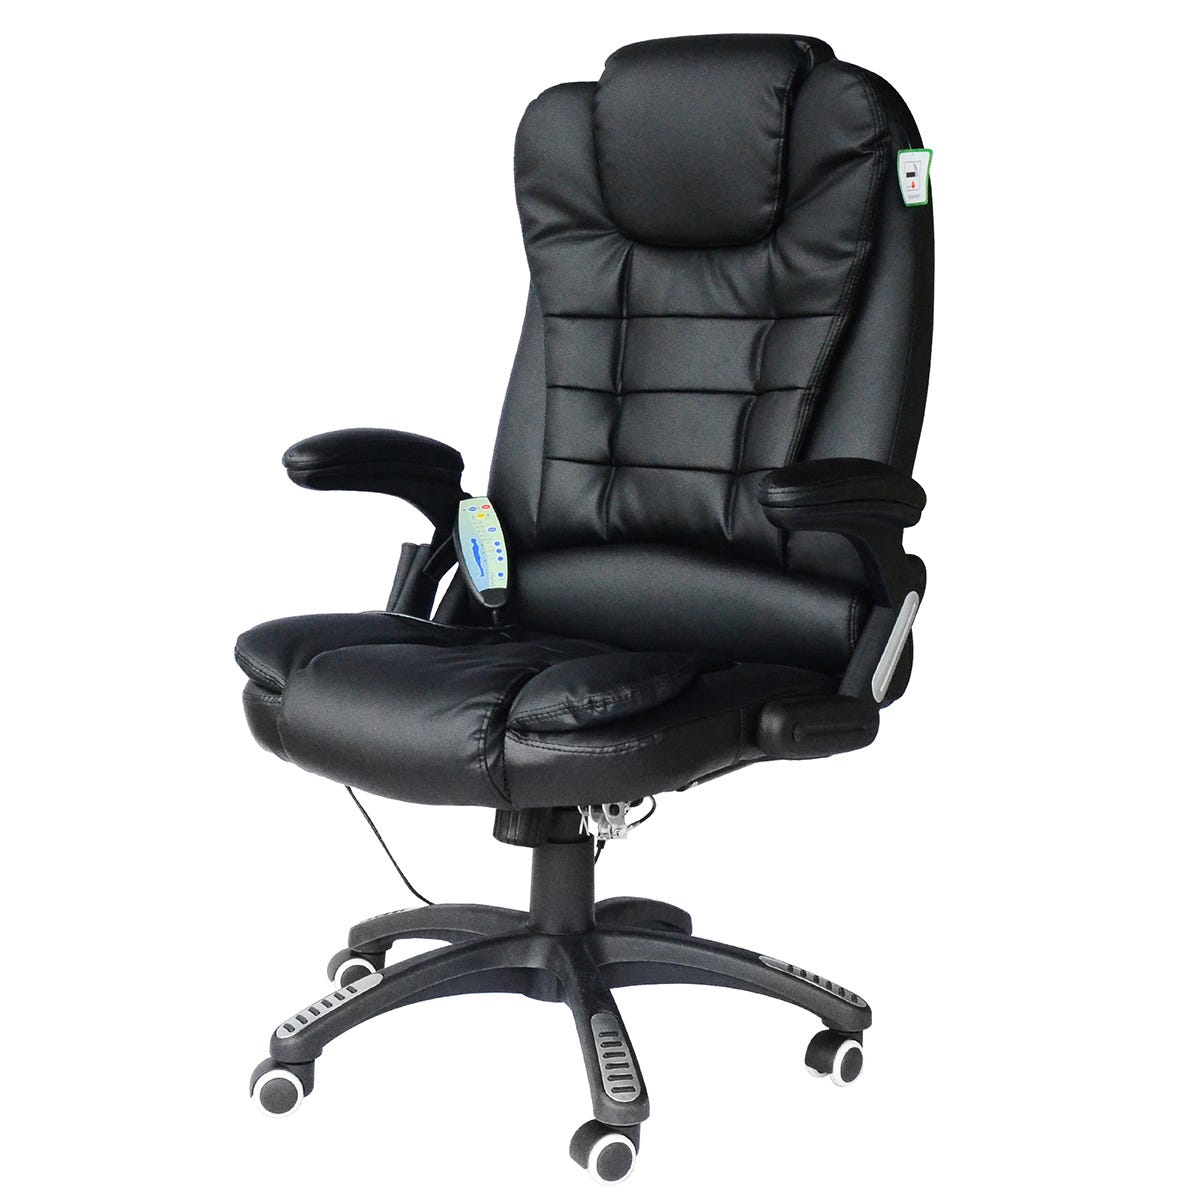 Zennor PU Leather Office Chair with Massage Function - Black